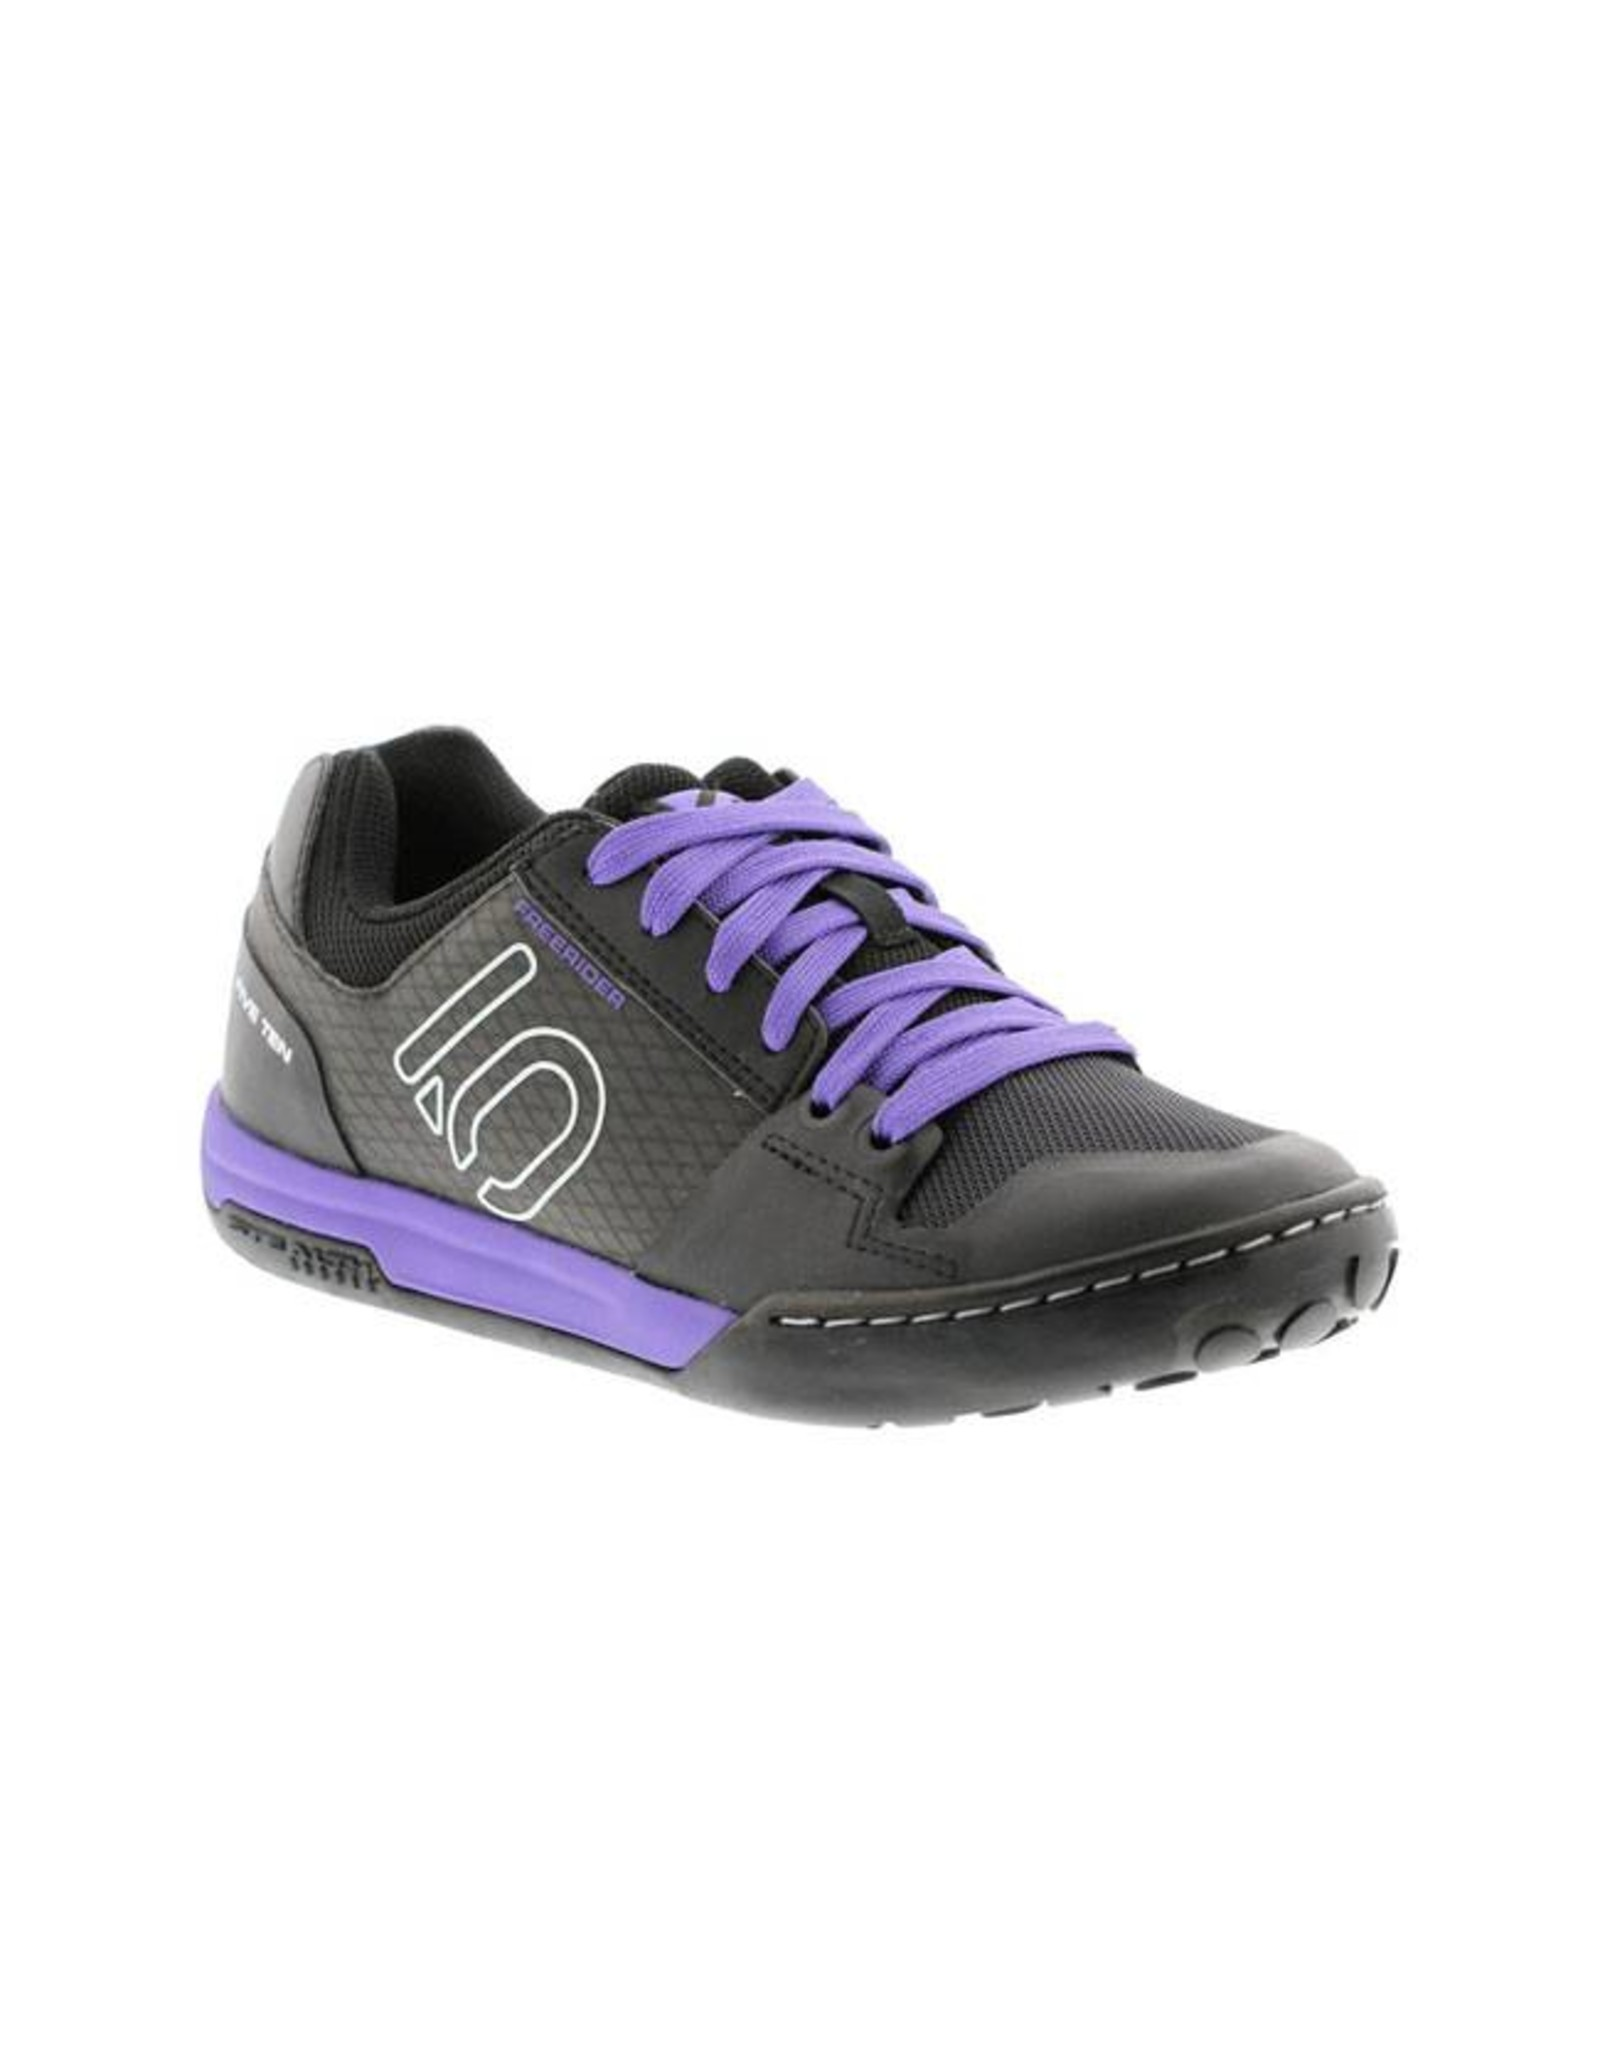 Five Ten Five Ten Freerider Contact Women's Flat Pedal Shoe: Split Purple 7.5